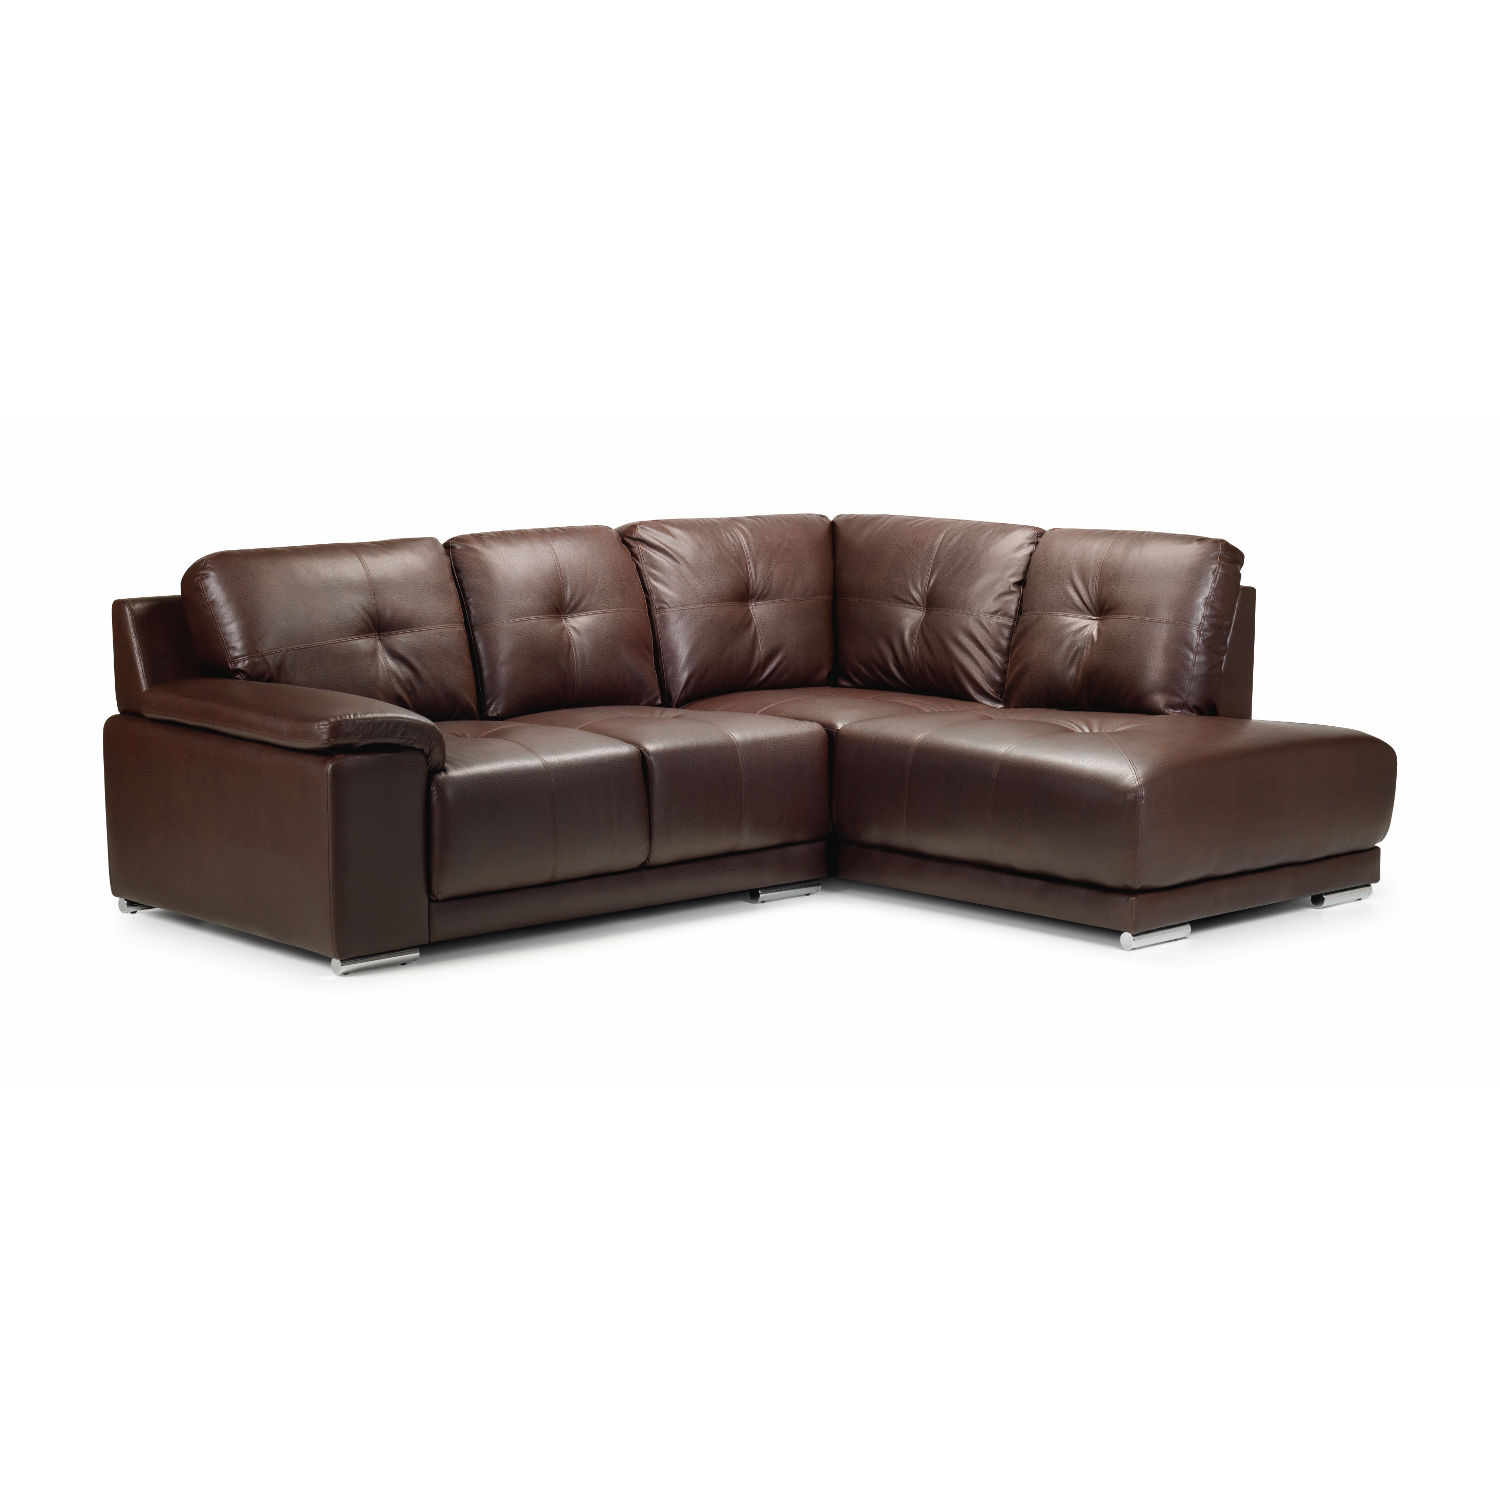 Dexter Corner Sofa Cj Trade